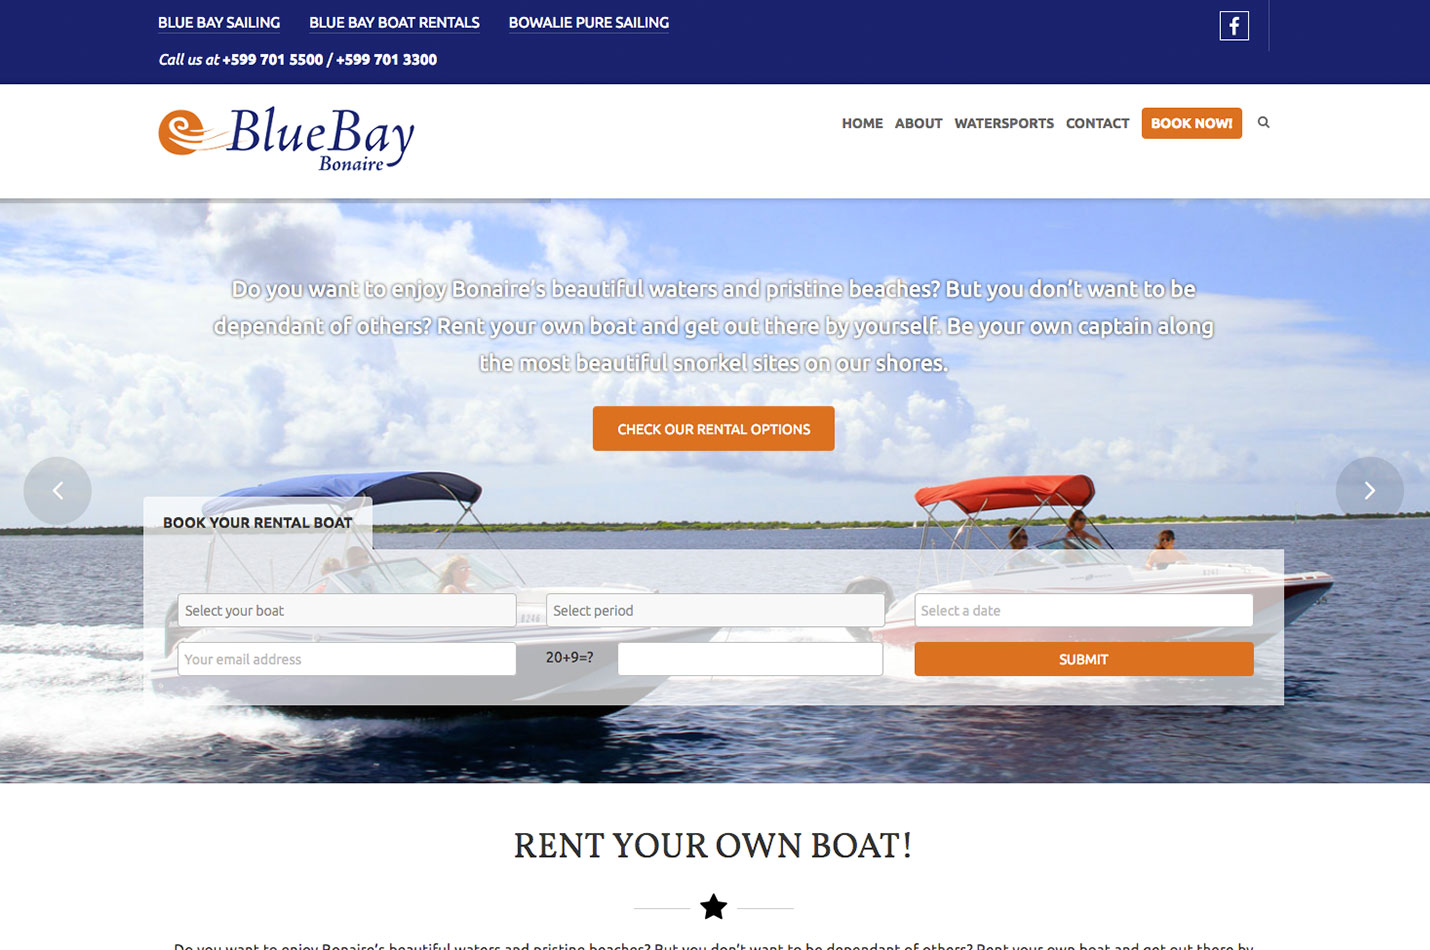 blue bay bonaire website design